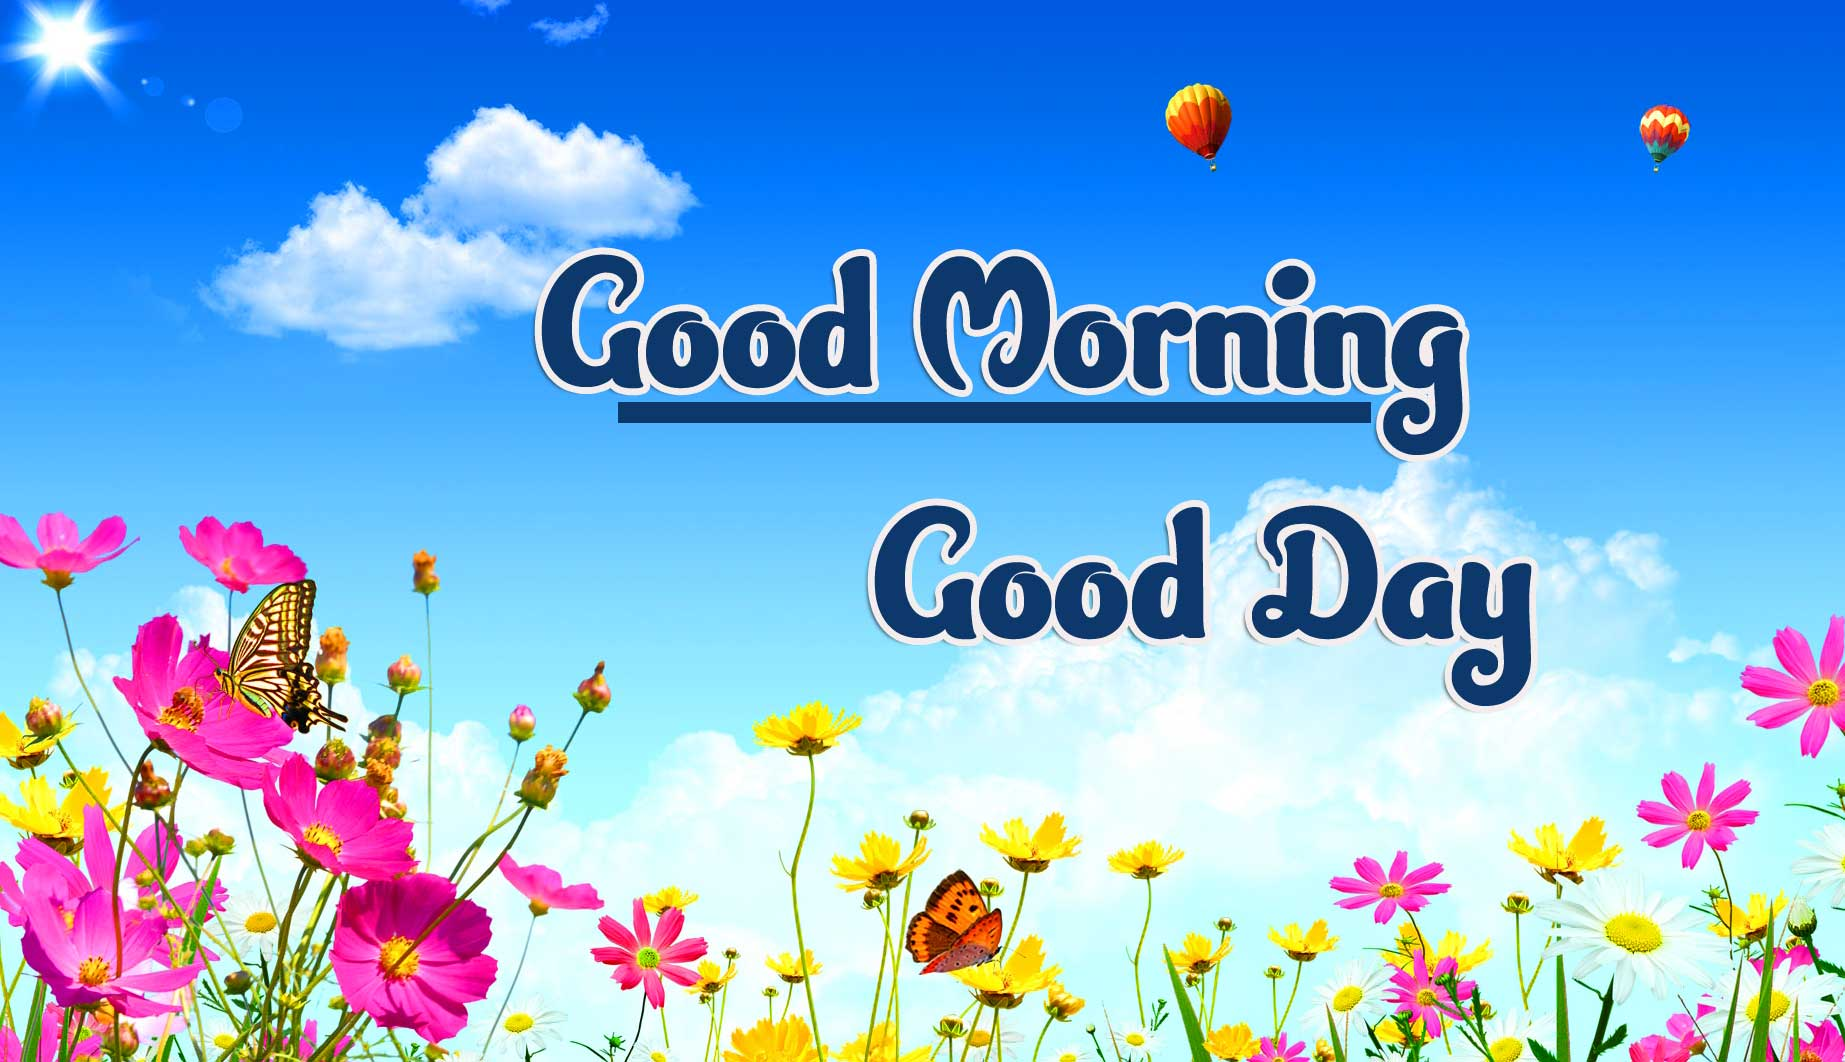 Good Morning 4k Ultra Images Wallpaper Pics Download